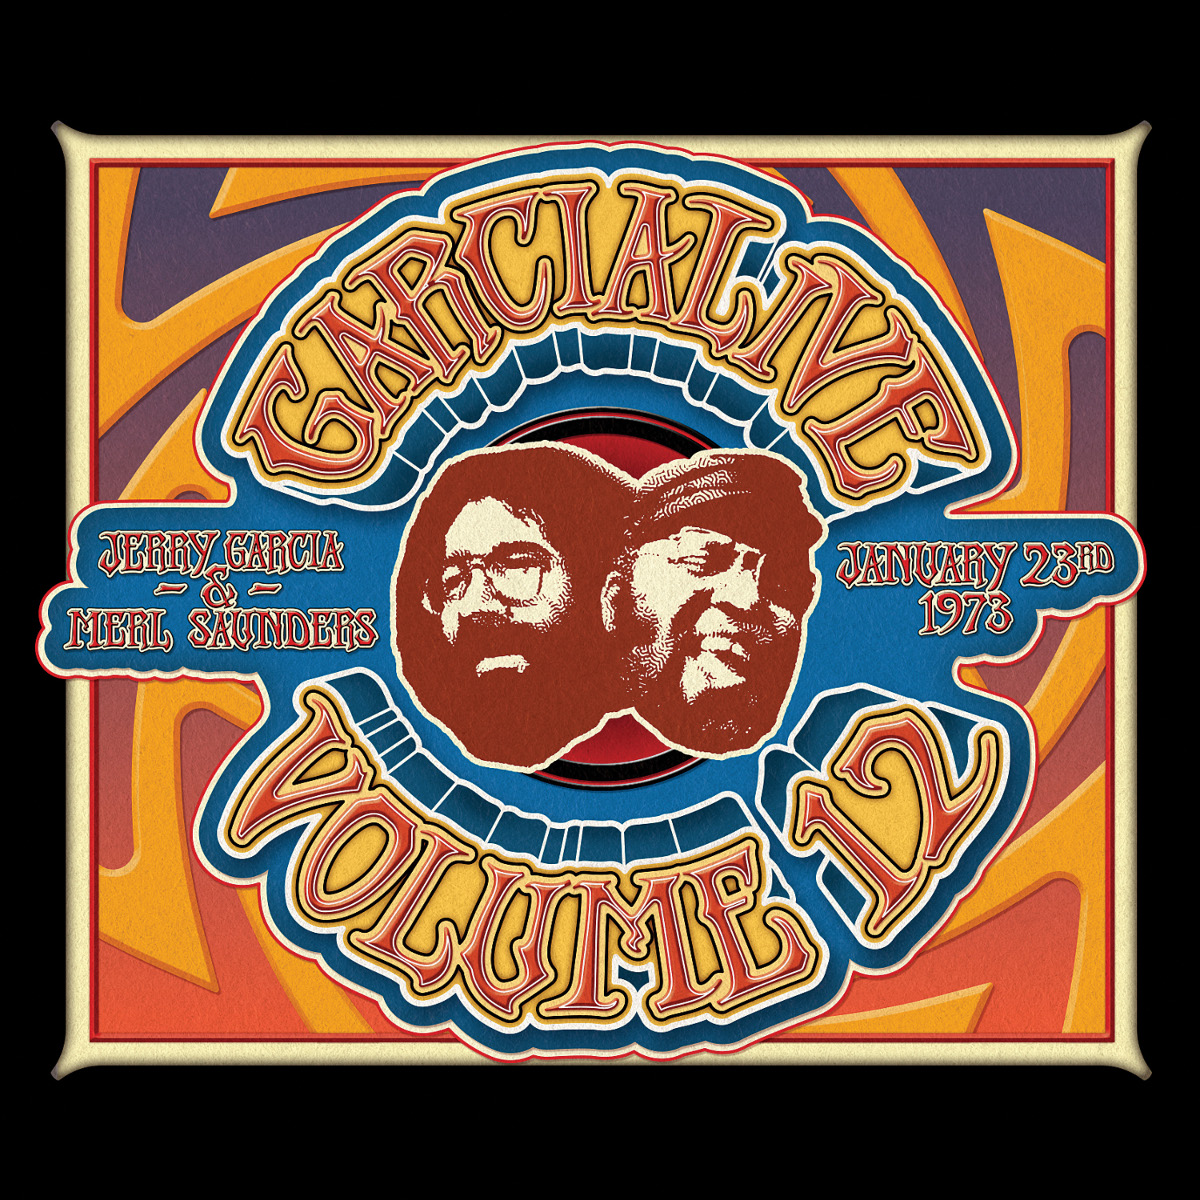 Jerry Garcia & Merl Saunders – GarciaLive Volume 12: 01/23/73 3-CD Set